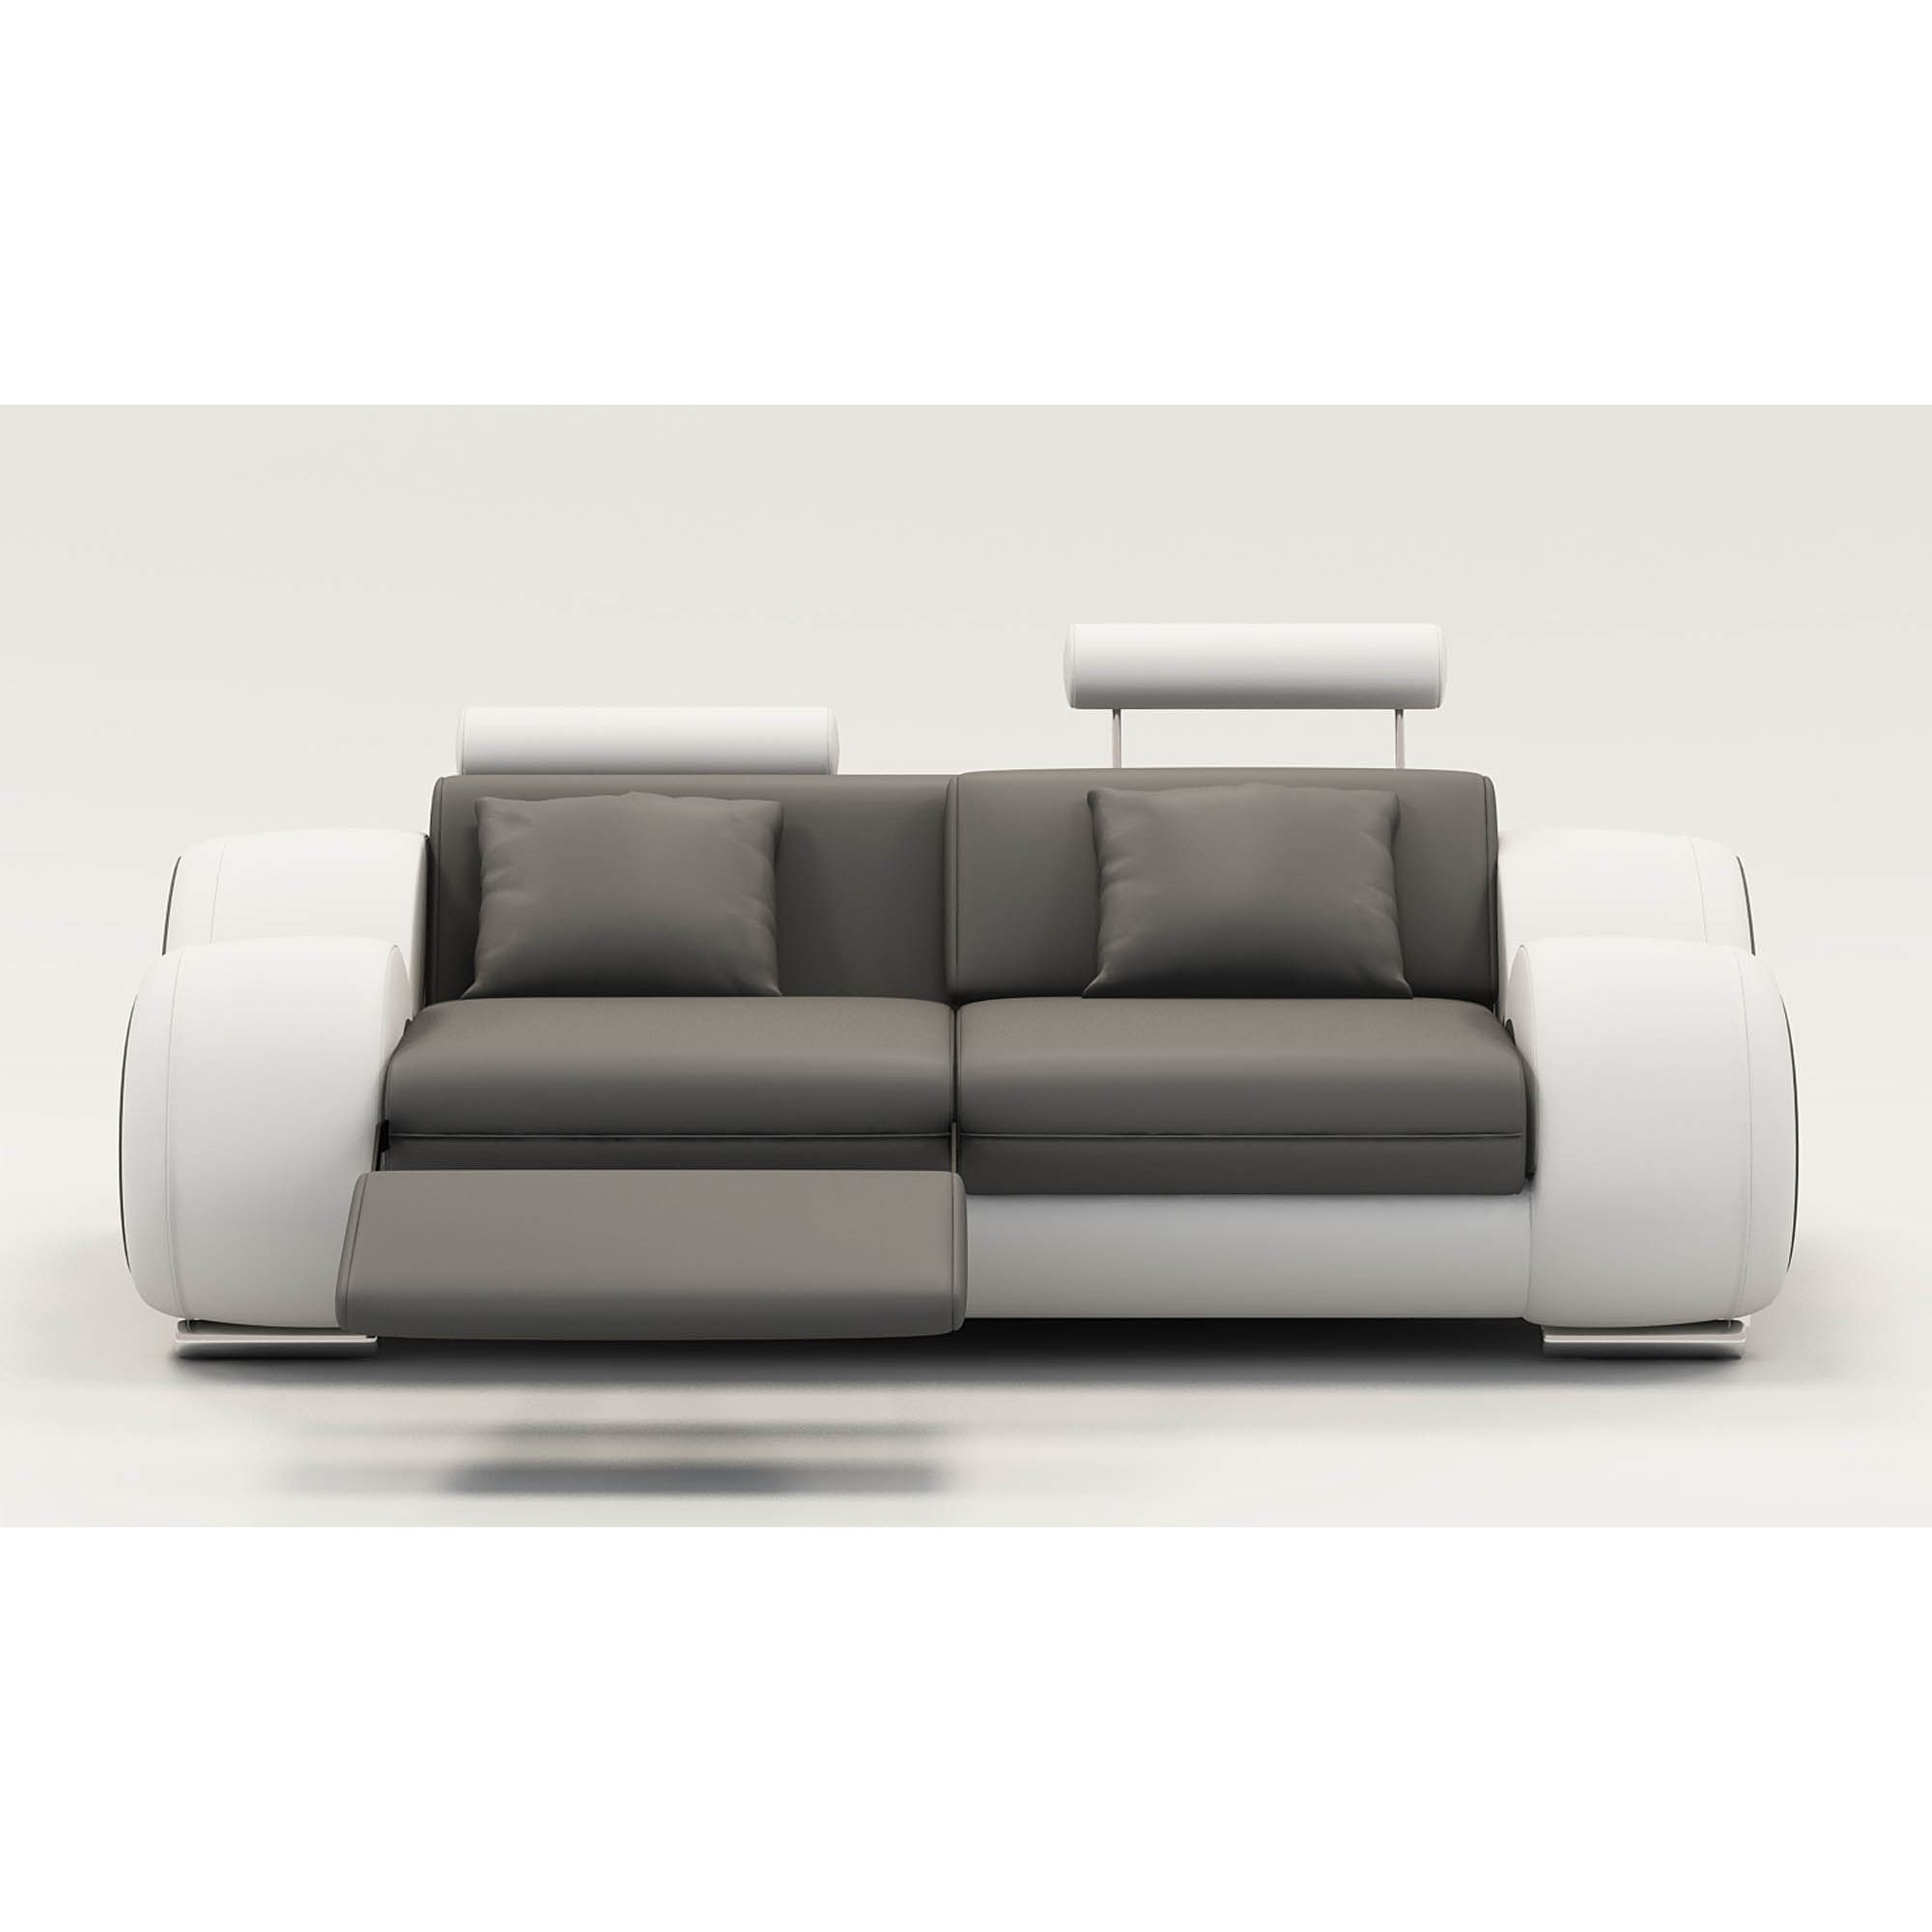 Deco in paris 7 canape 2 places design relax oslo en - Canape cuir blanc relax ...